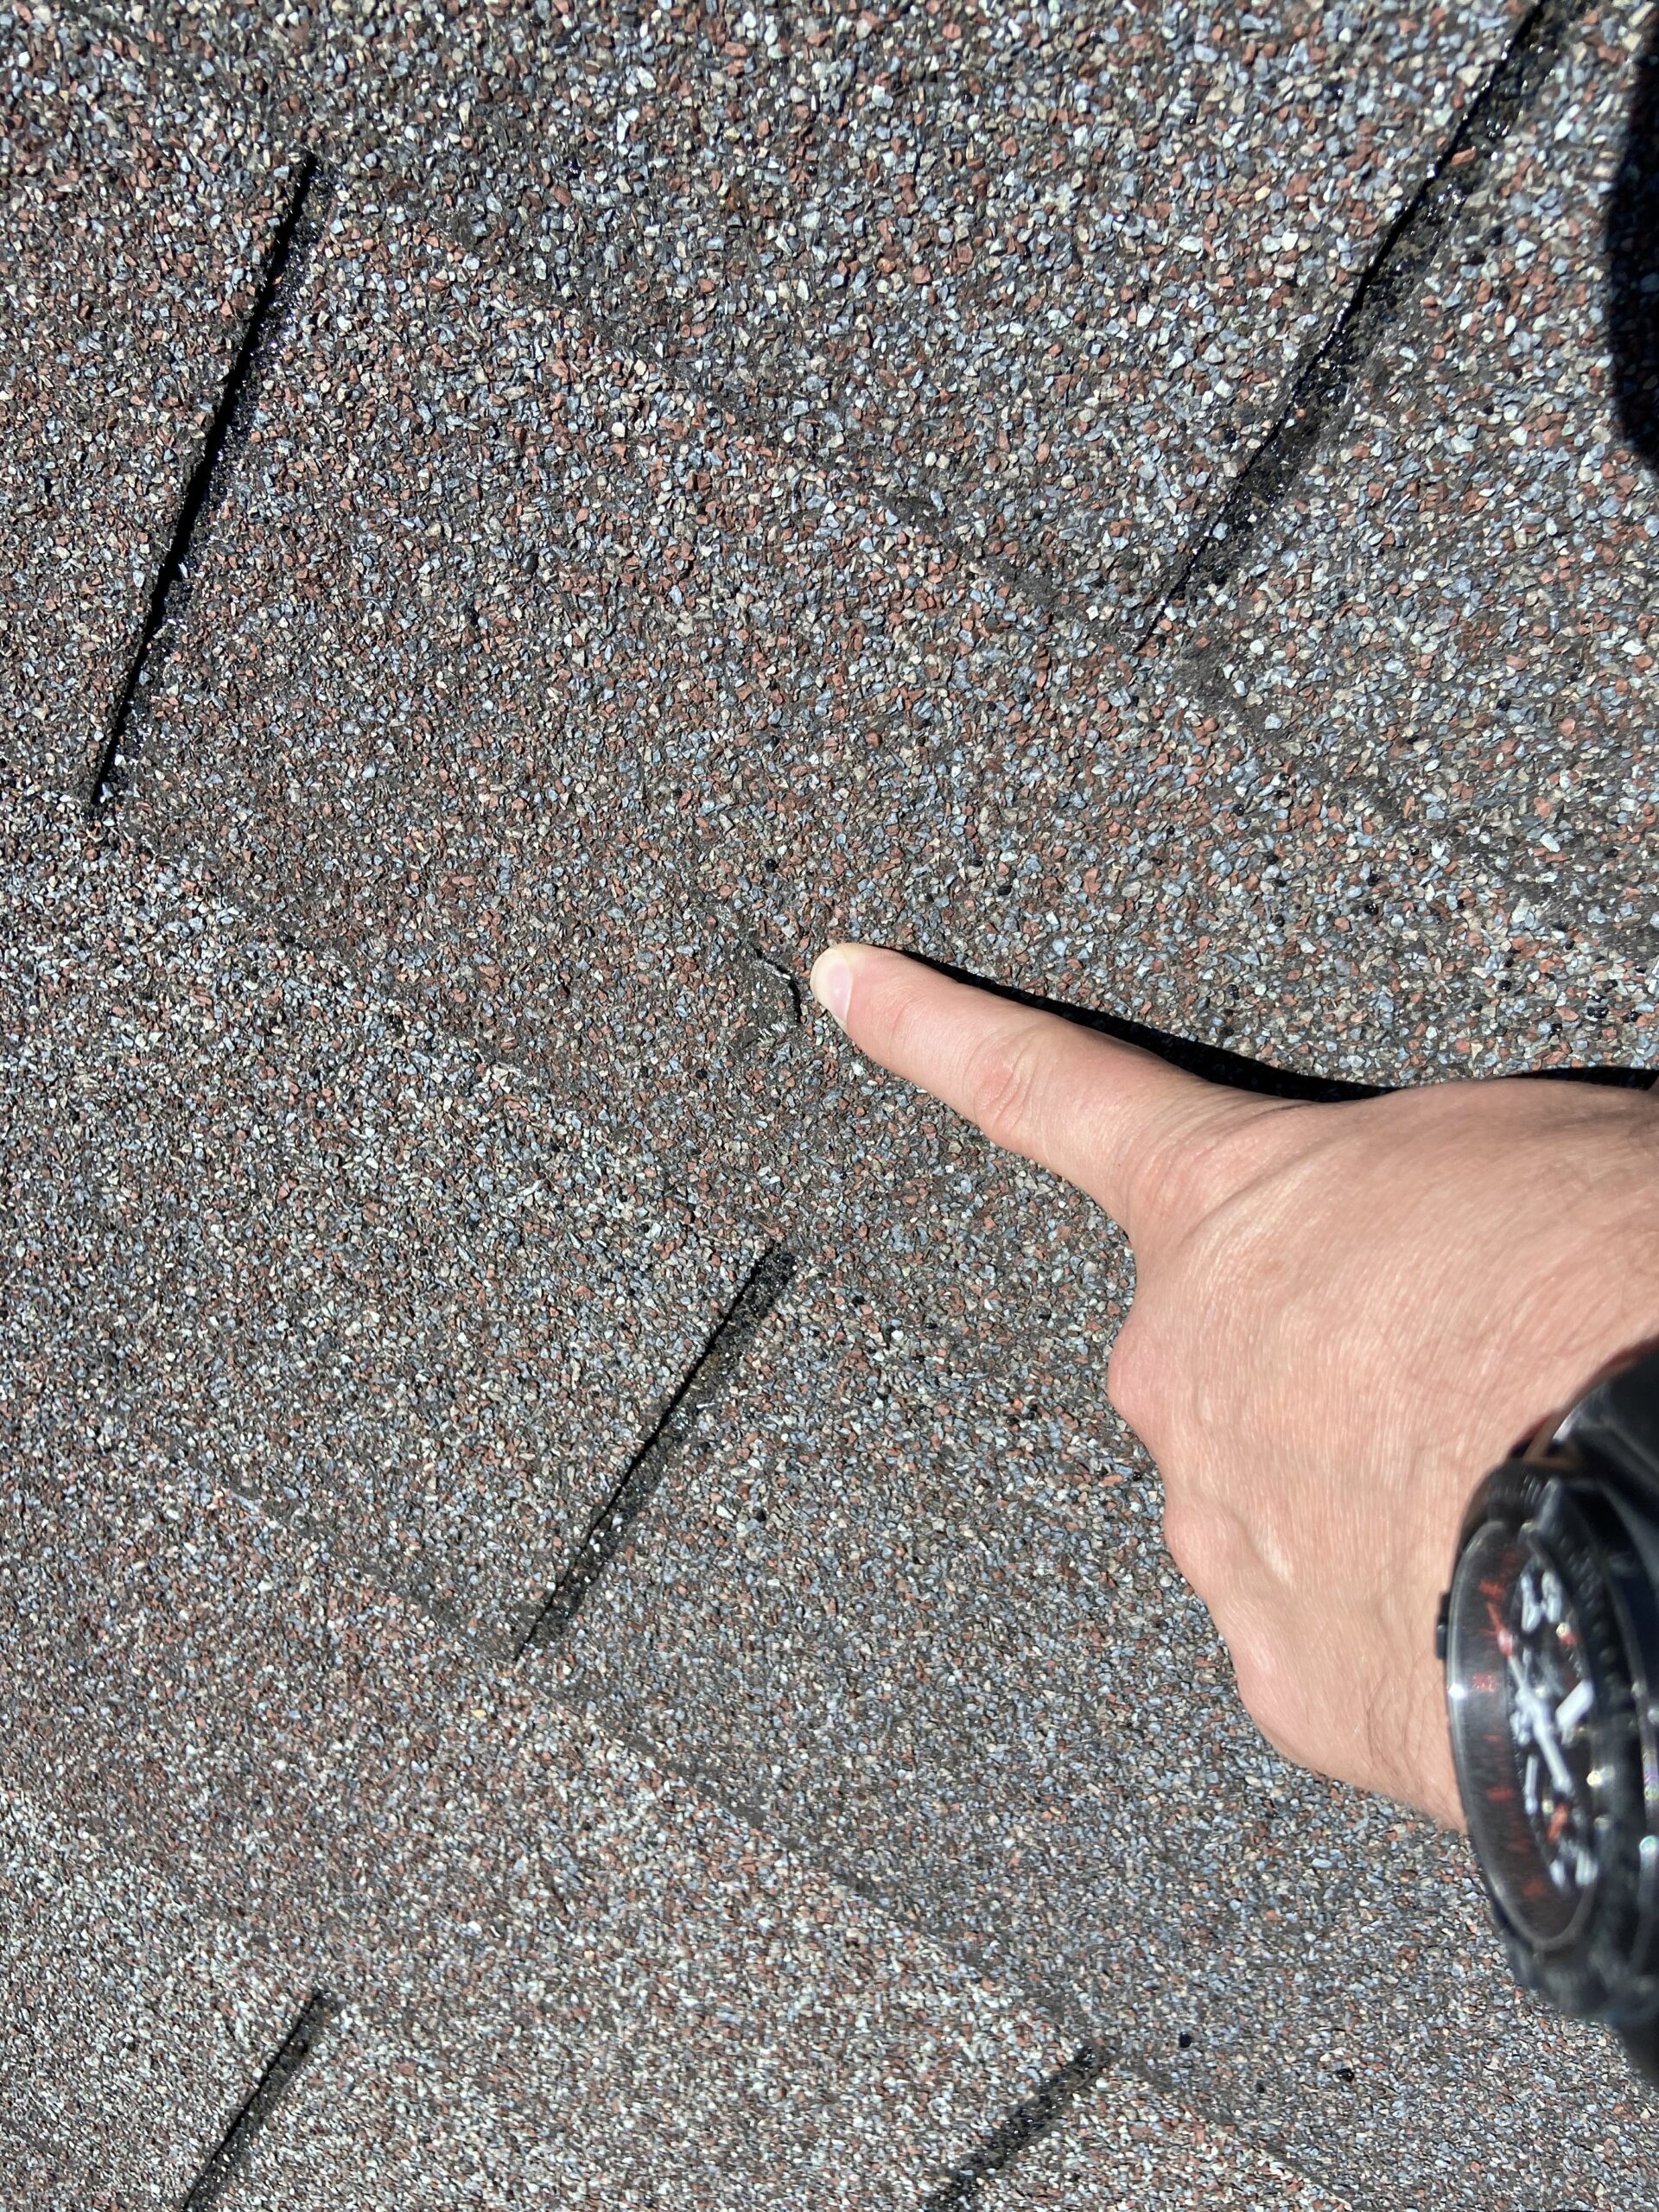 This is a picture of a gray roof with a hole in it and I'm pointing out the hole